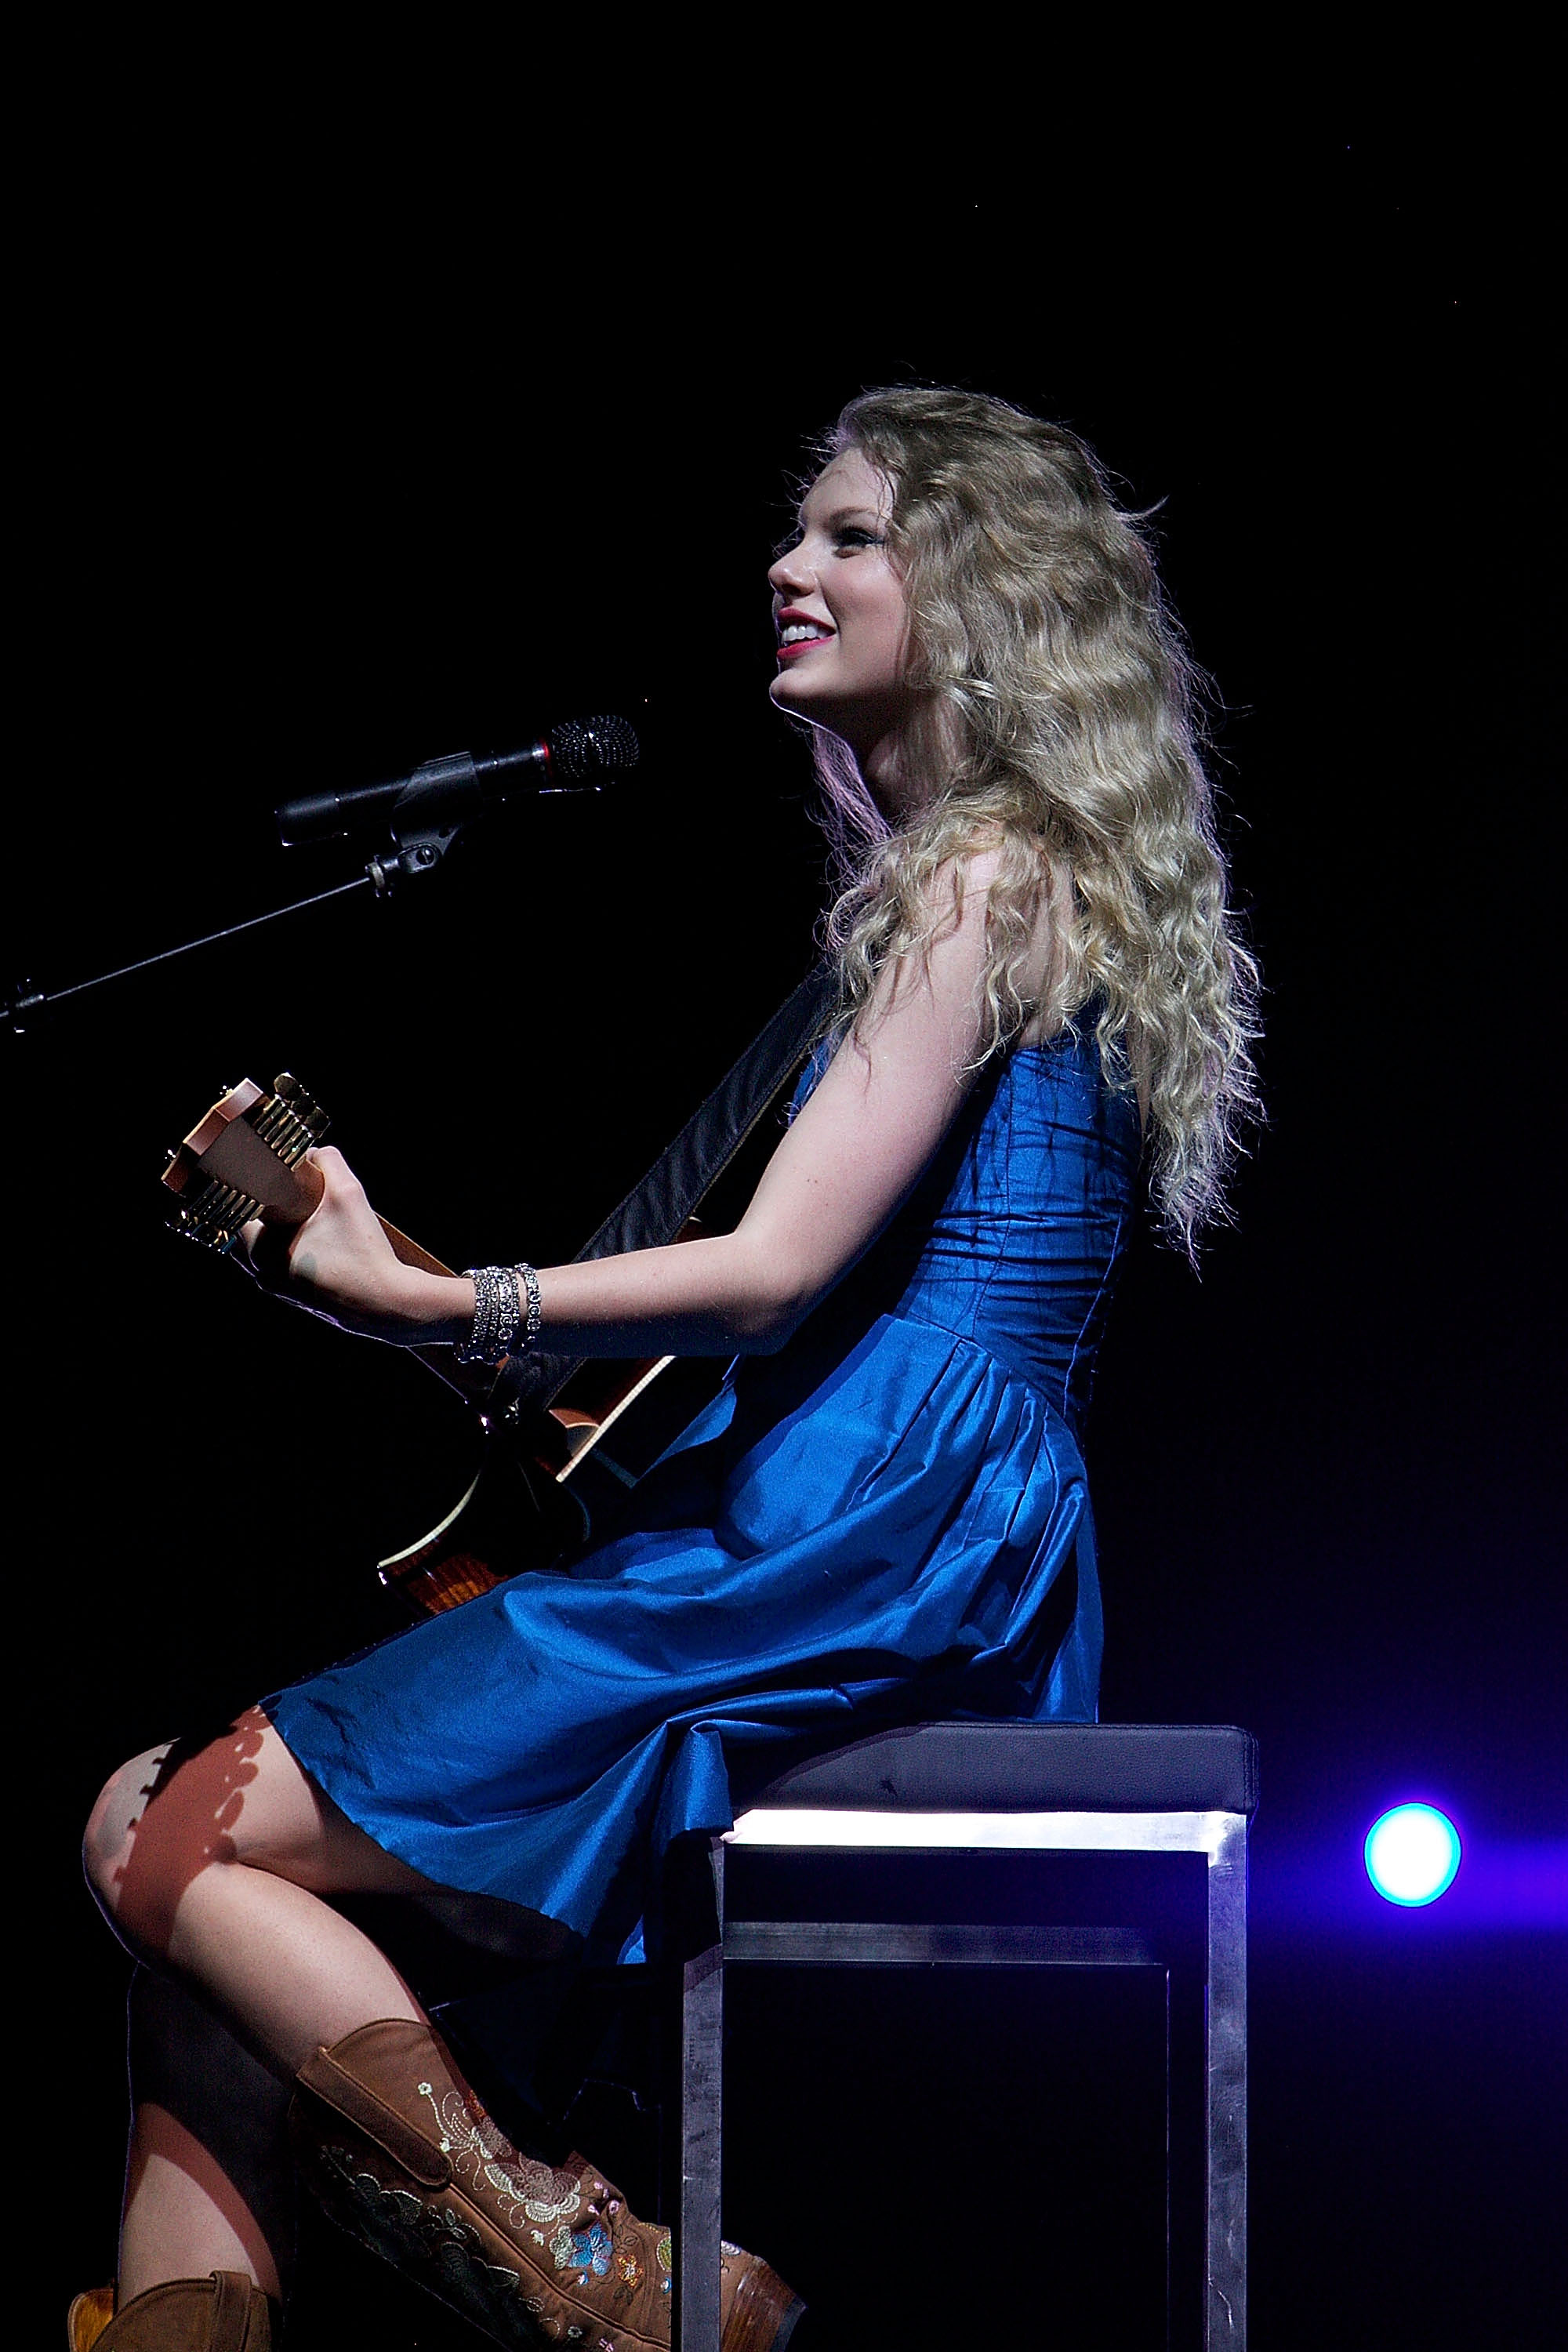 32661_Taylor_swift_performs_her_Fearless_Tour_at_Tiger_Stadium_035_122_64lo.jpg